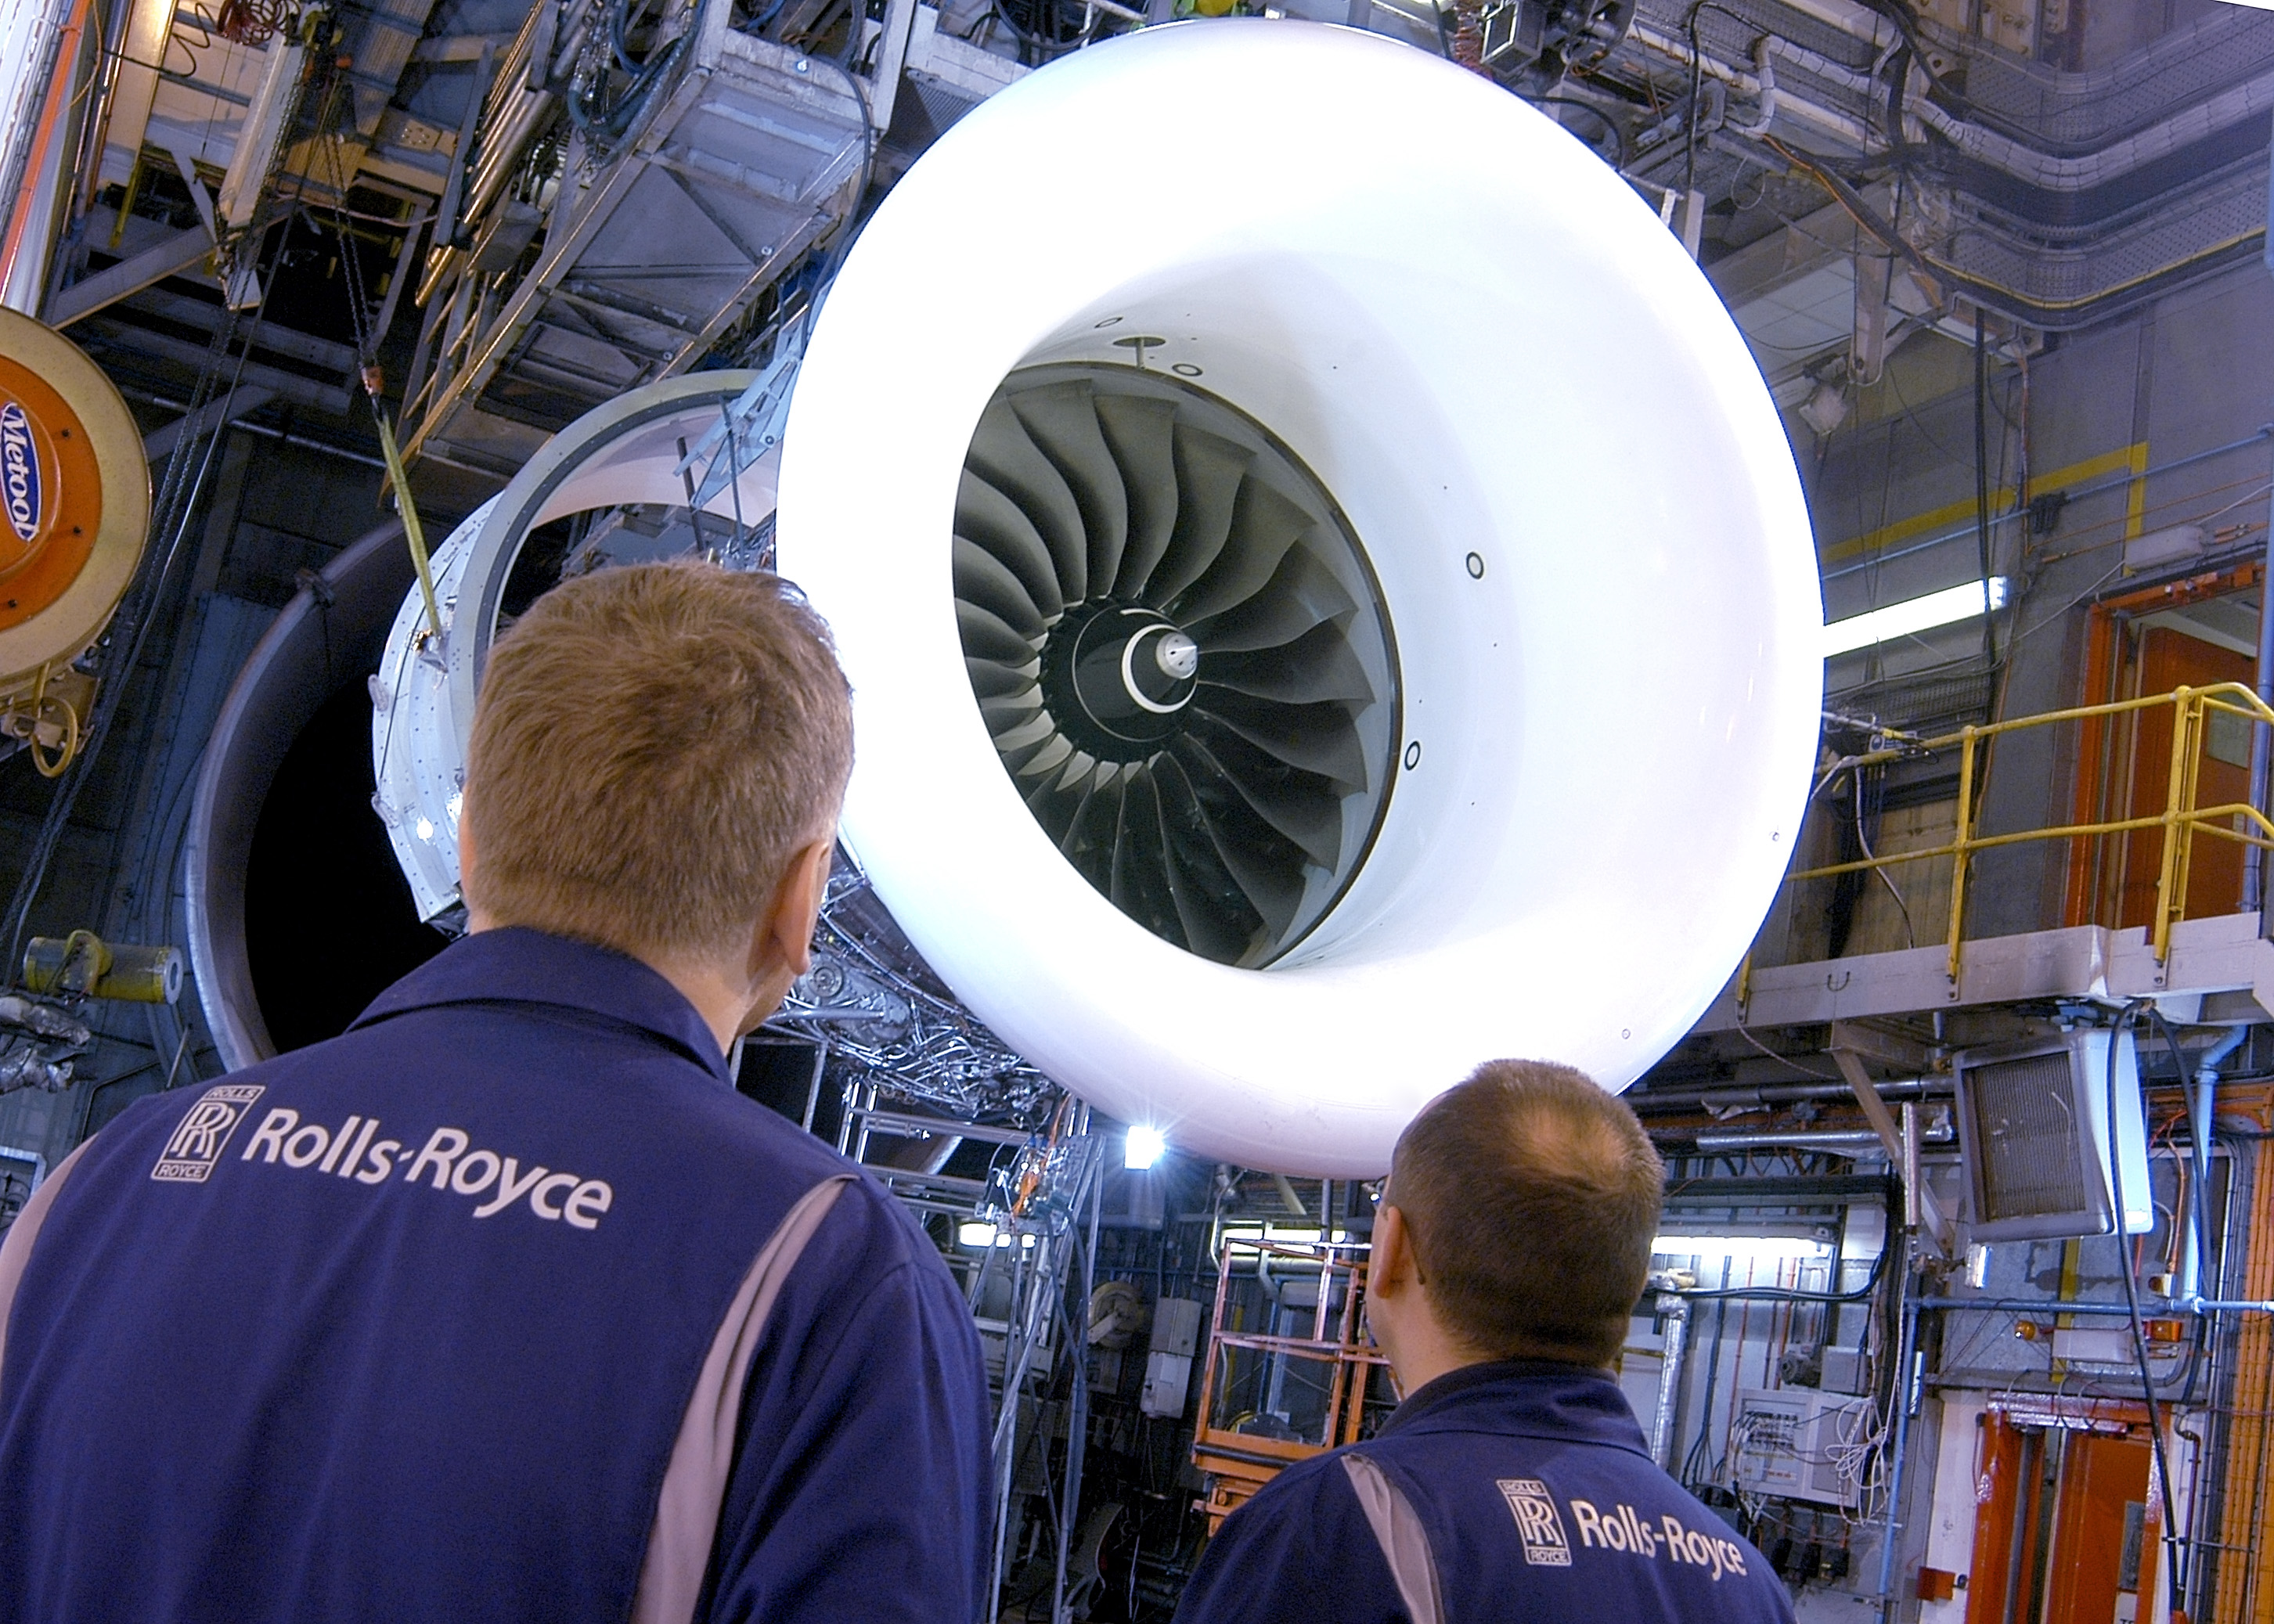 Dreamliner Rolls-Royce engine alert: What you need to know